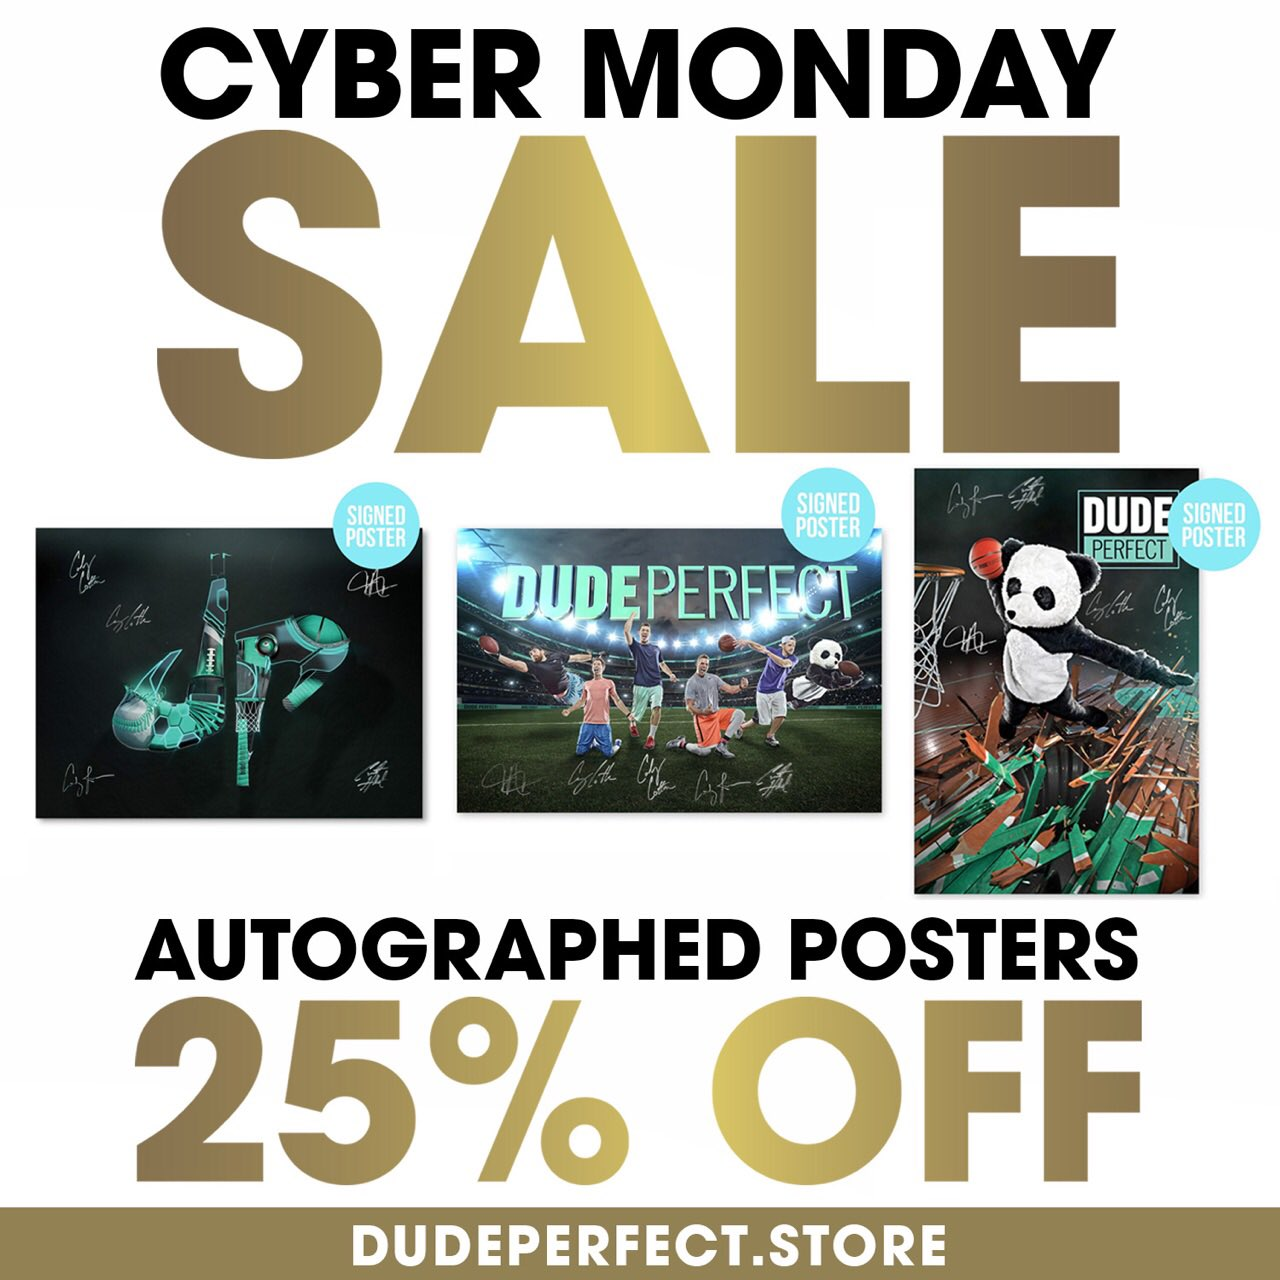 dude perfect on twitter cyber monday